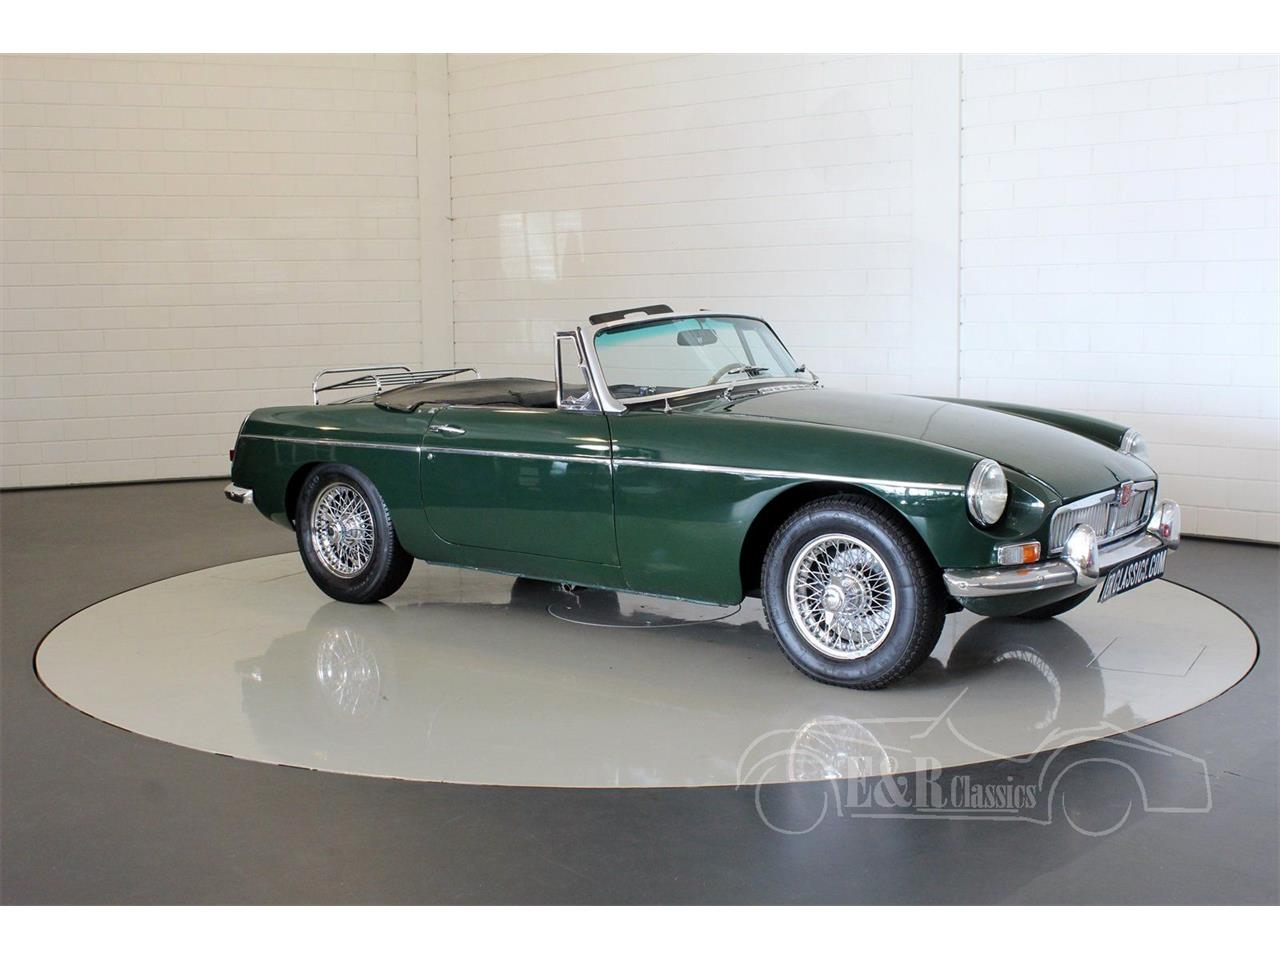 Large Picture of '64 MGB located in Waalwijk noord brabant - $27,950.00 - Q178